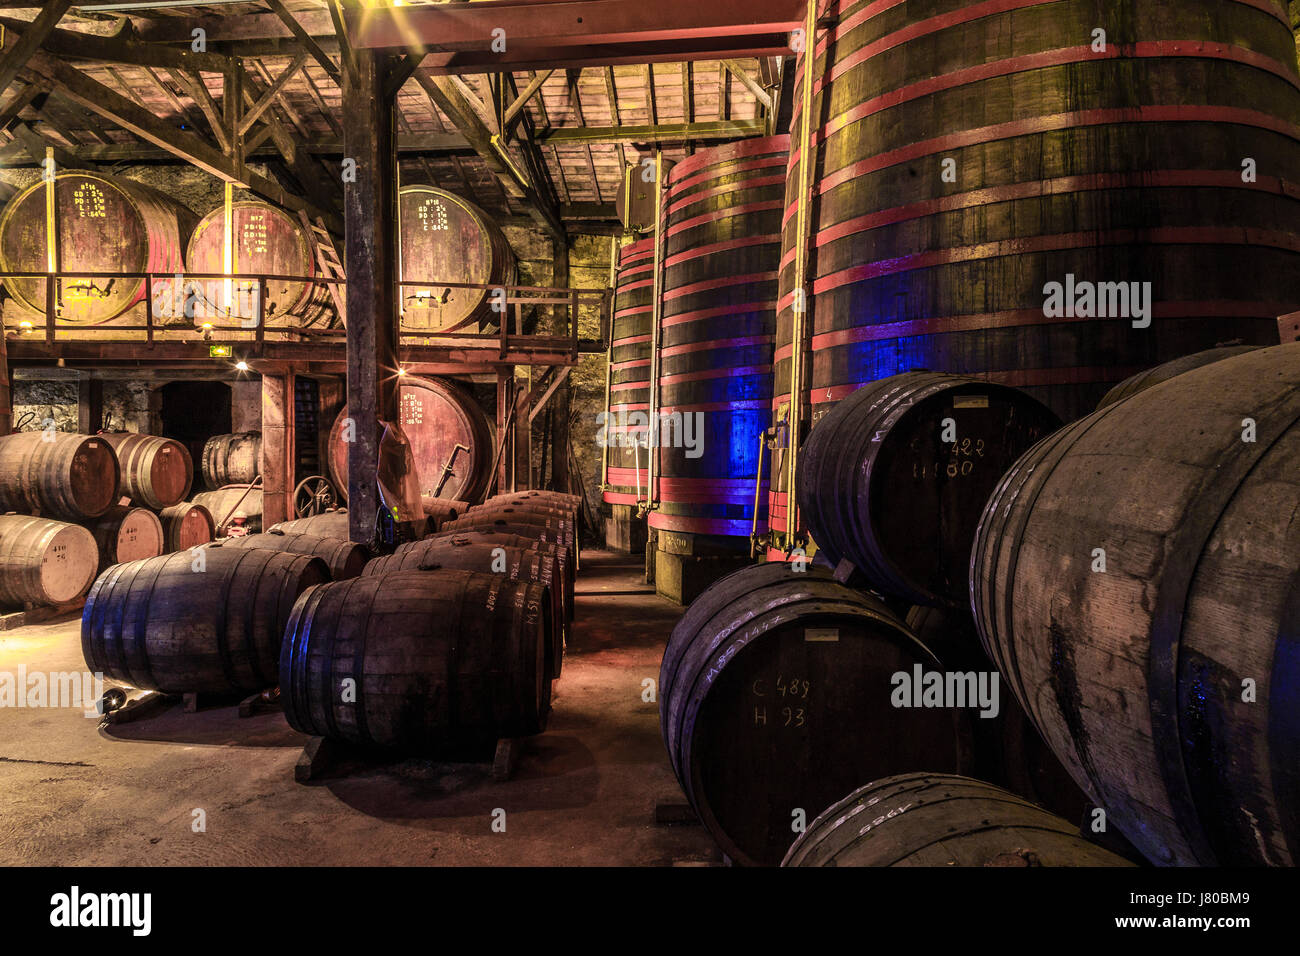 France, Gers, Condom, on the way to Saint Jacques de Compostela, Castle Cugnac, armagnac Ryst Dupeyron, cellar - Stock Image